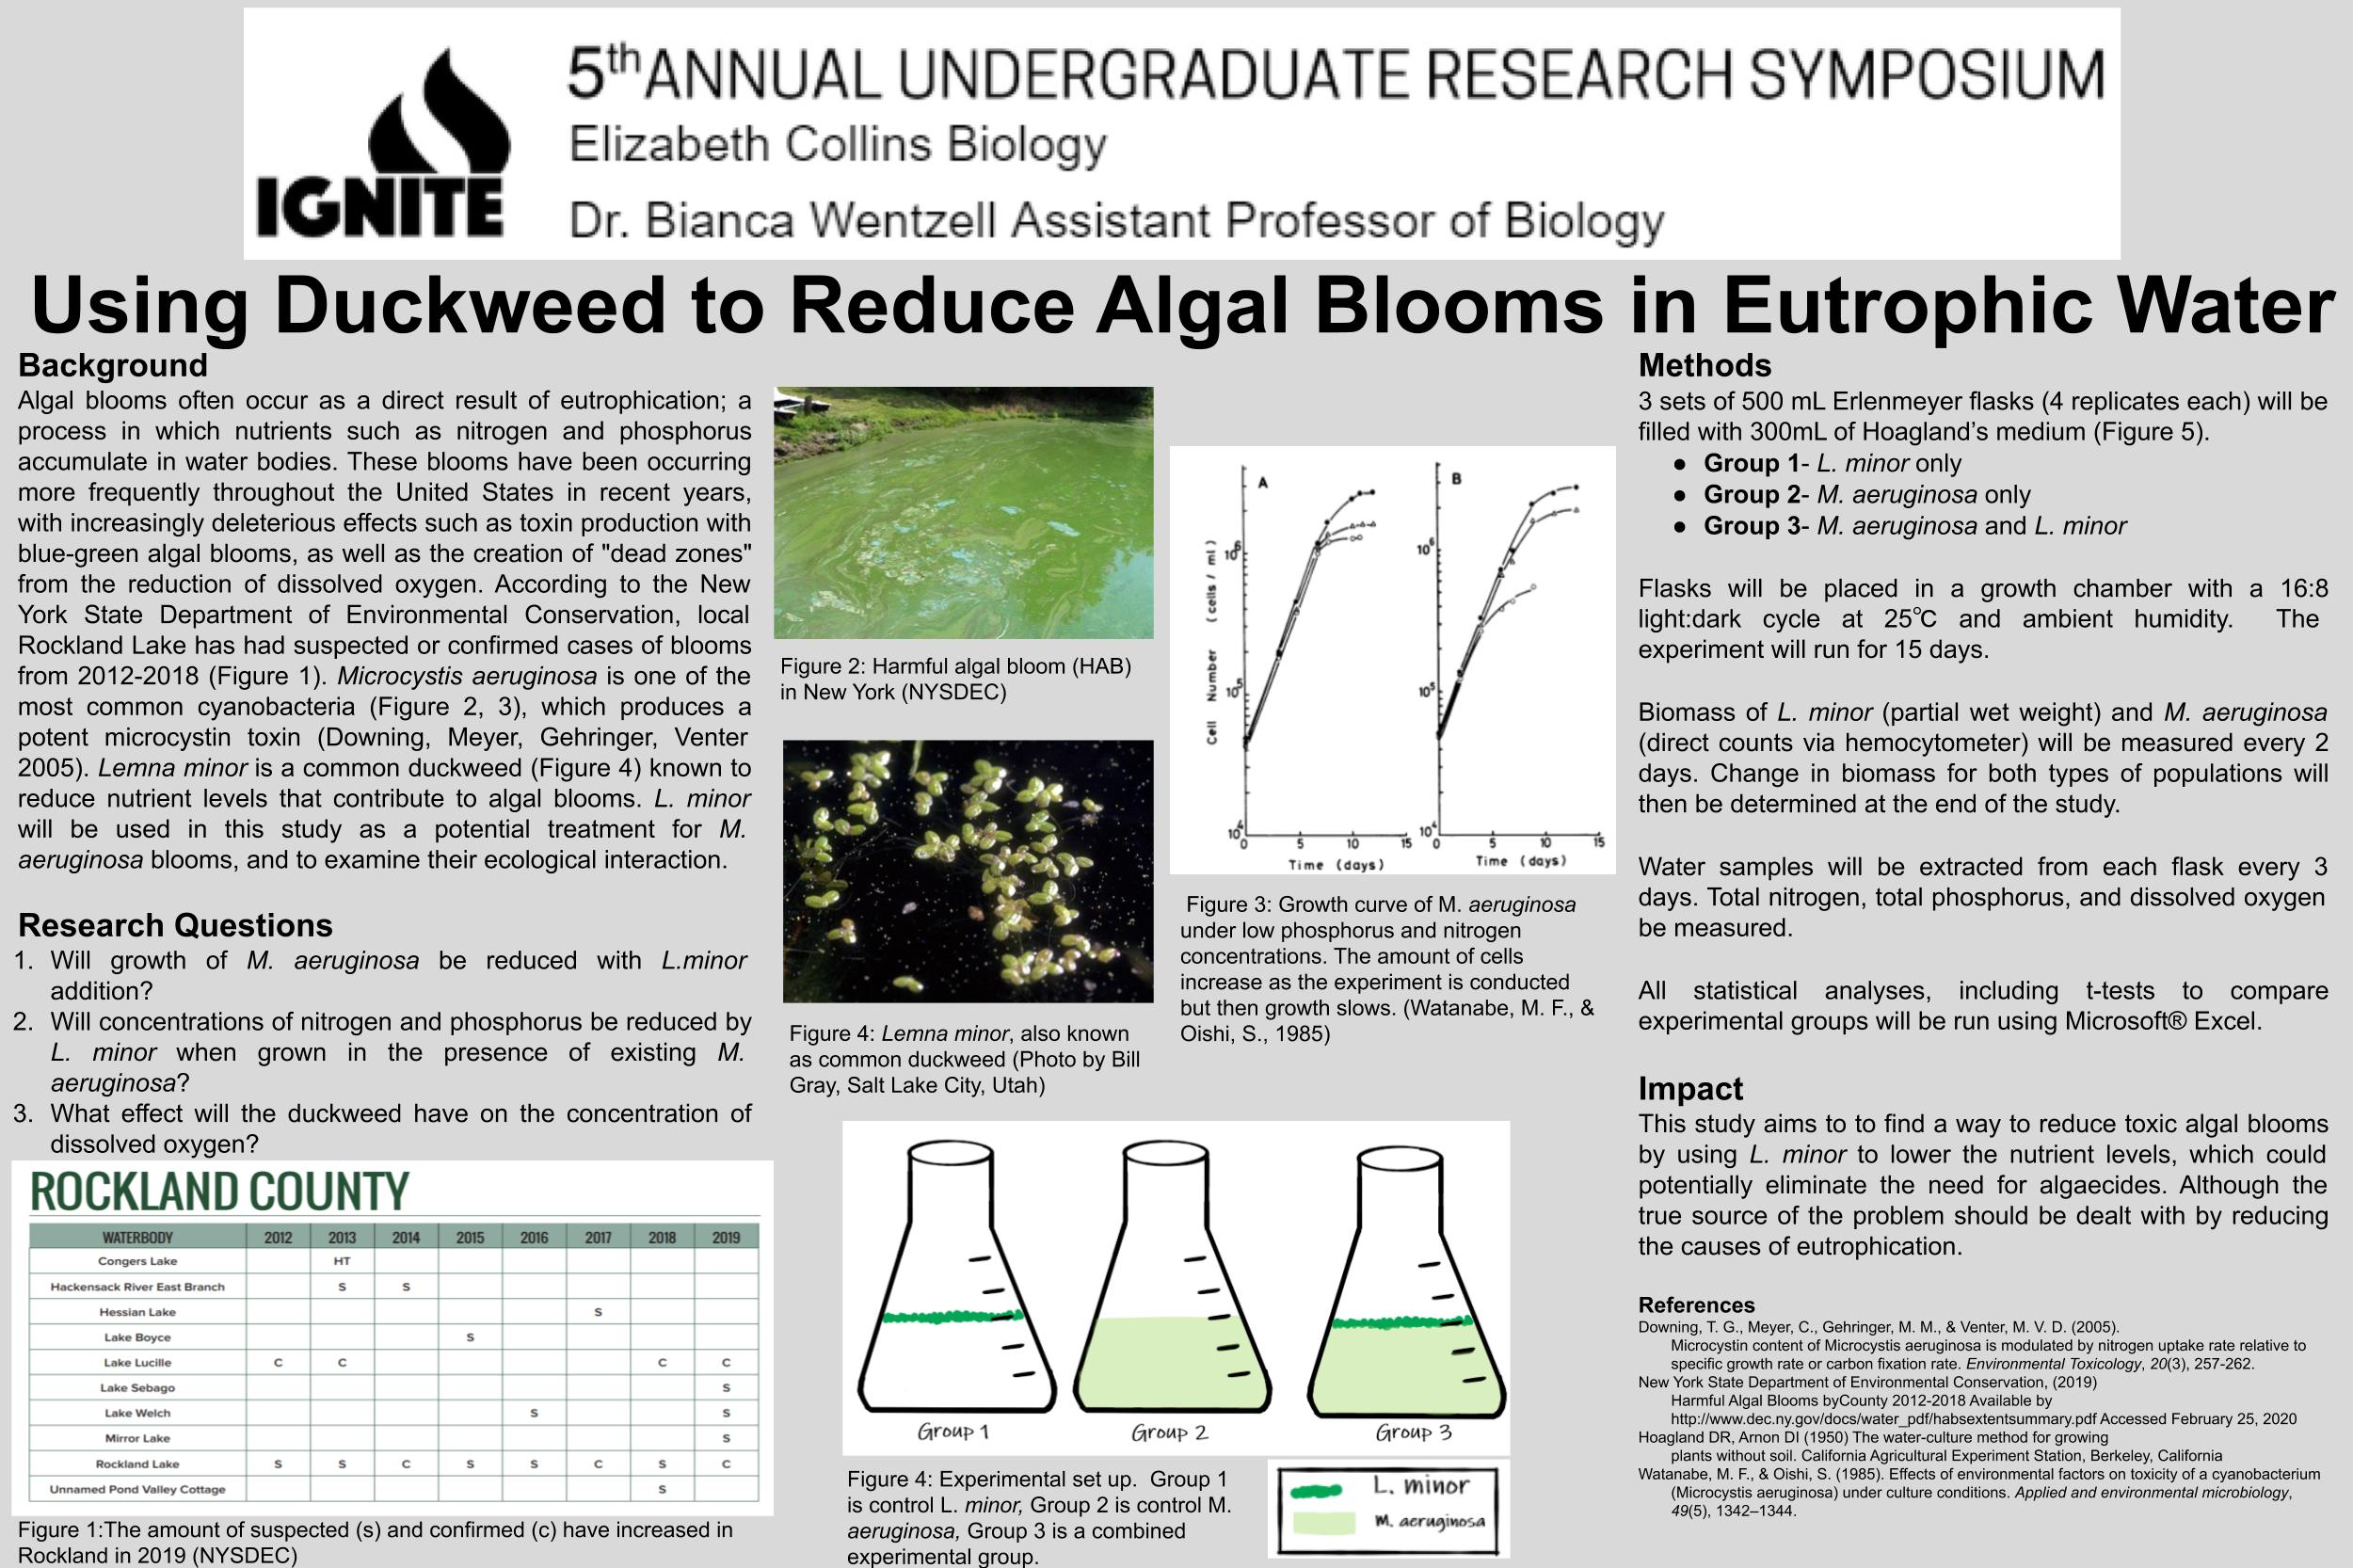 Collins research poster